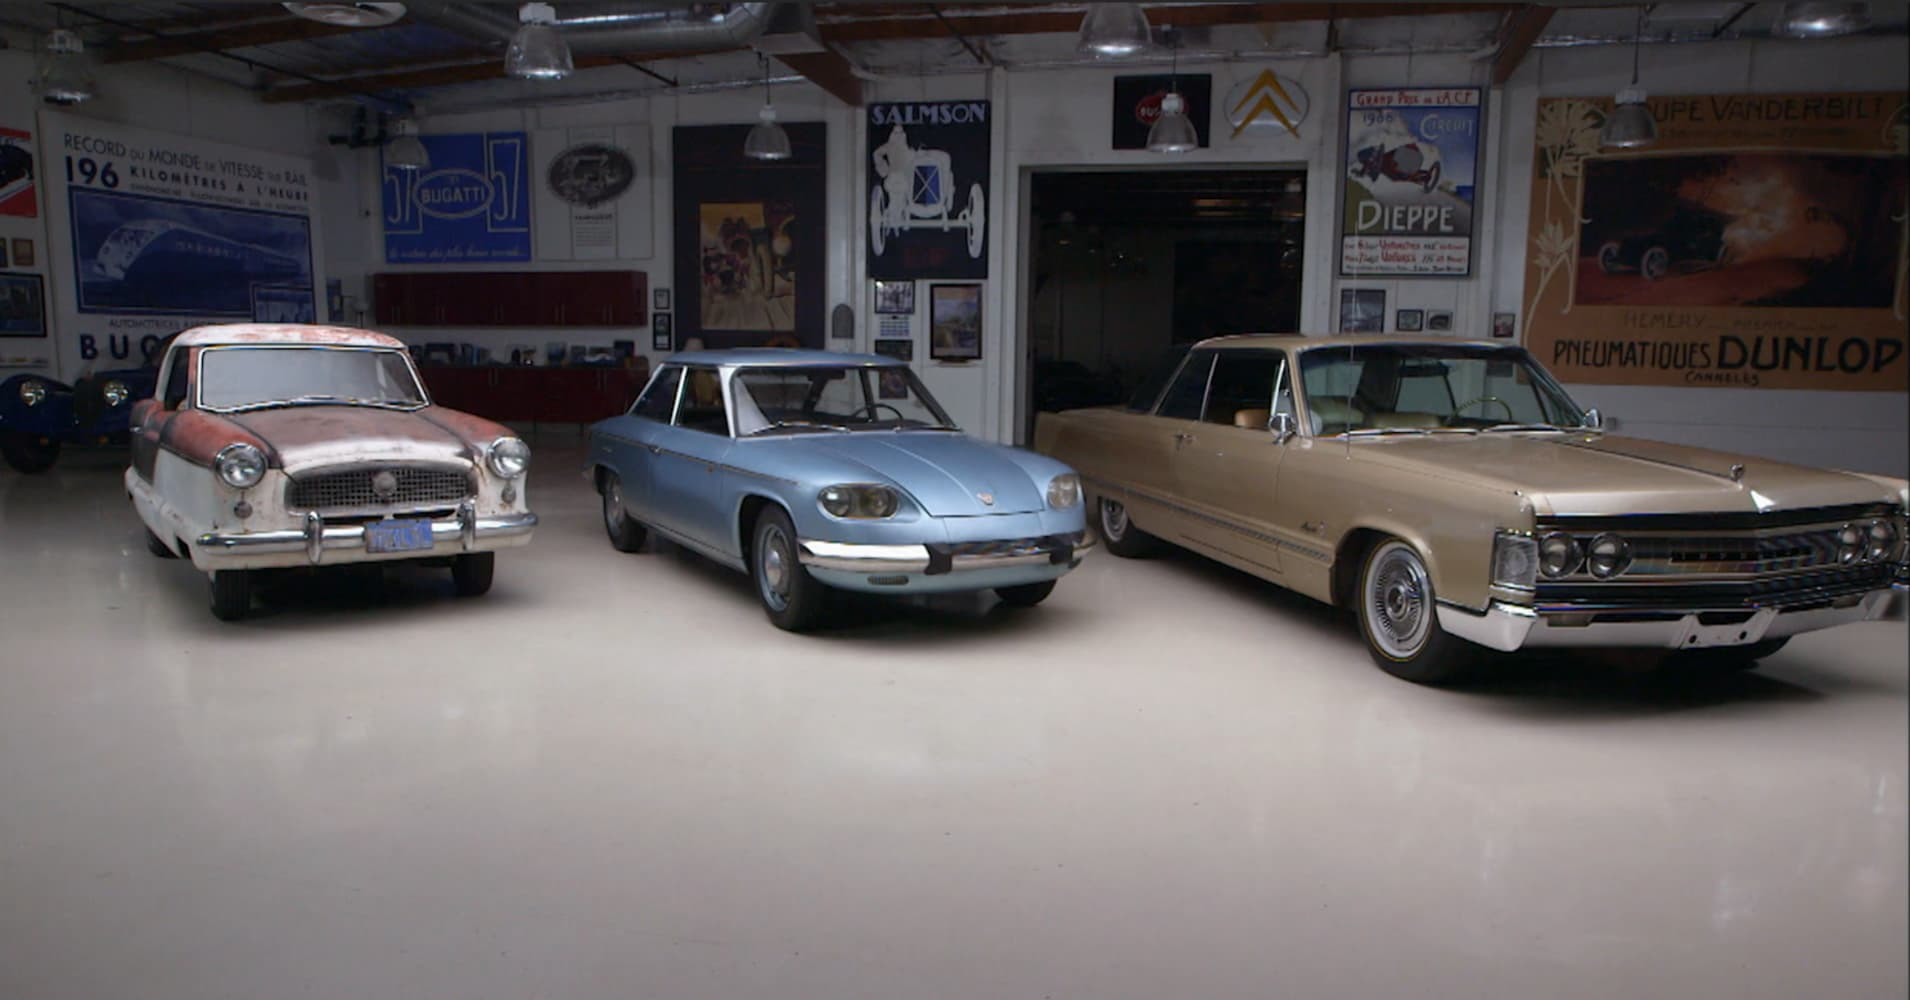 Which of these 3 original classic cars appreciated best